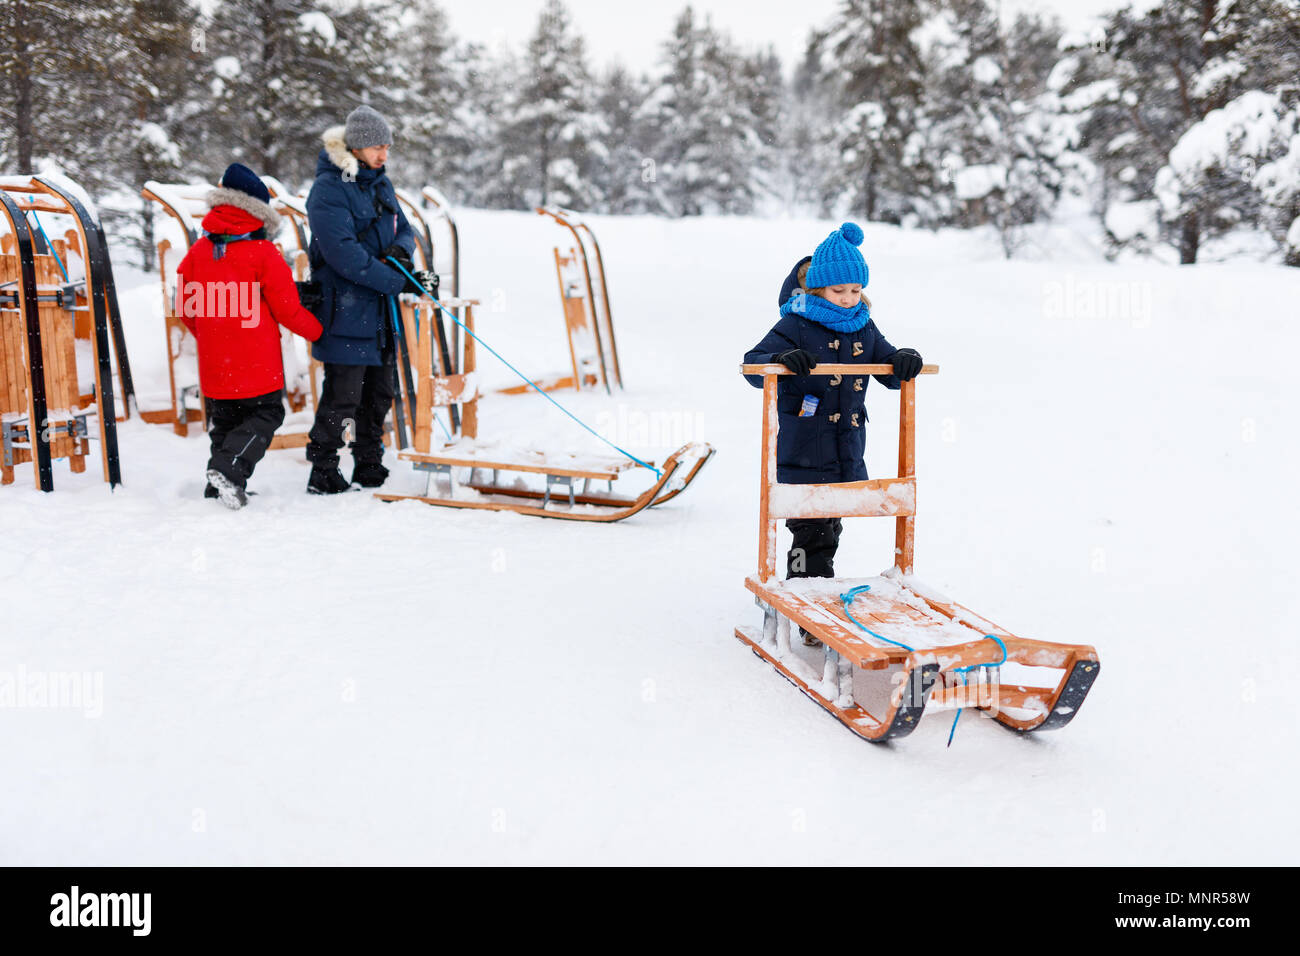 Beautiful family of father and kids enjoying snowy winter day outdoors having fun sledging - Stock Image